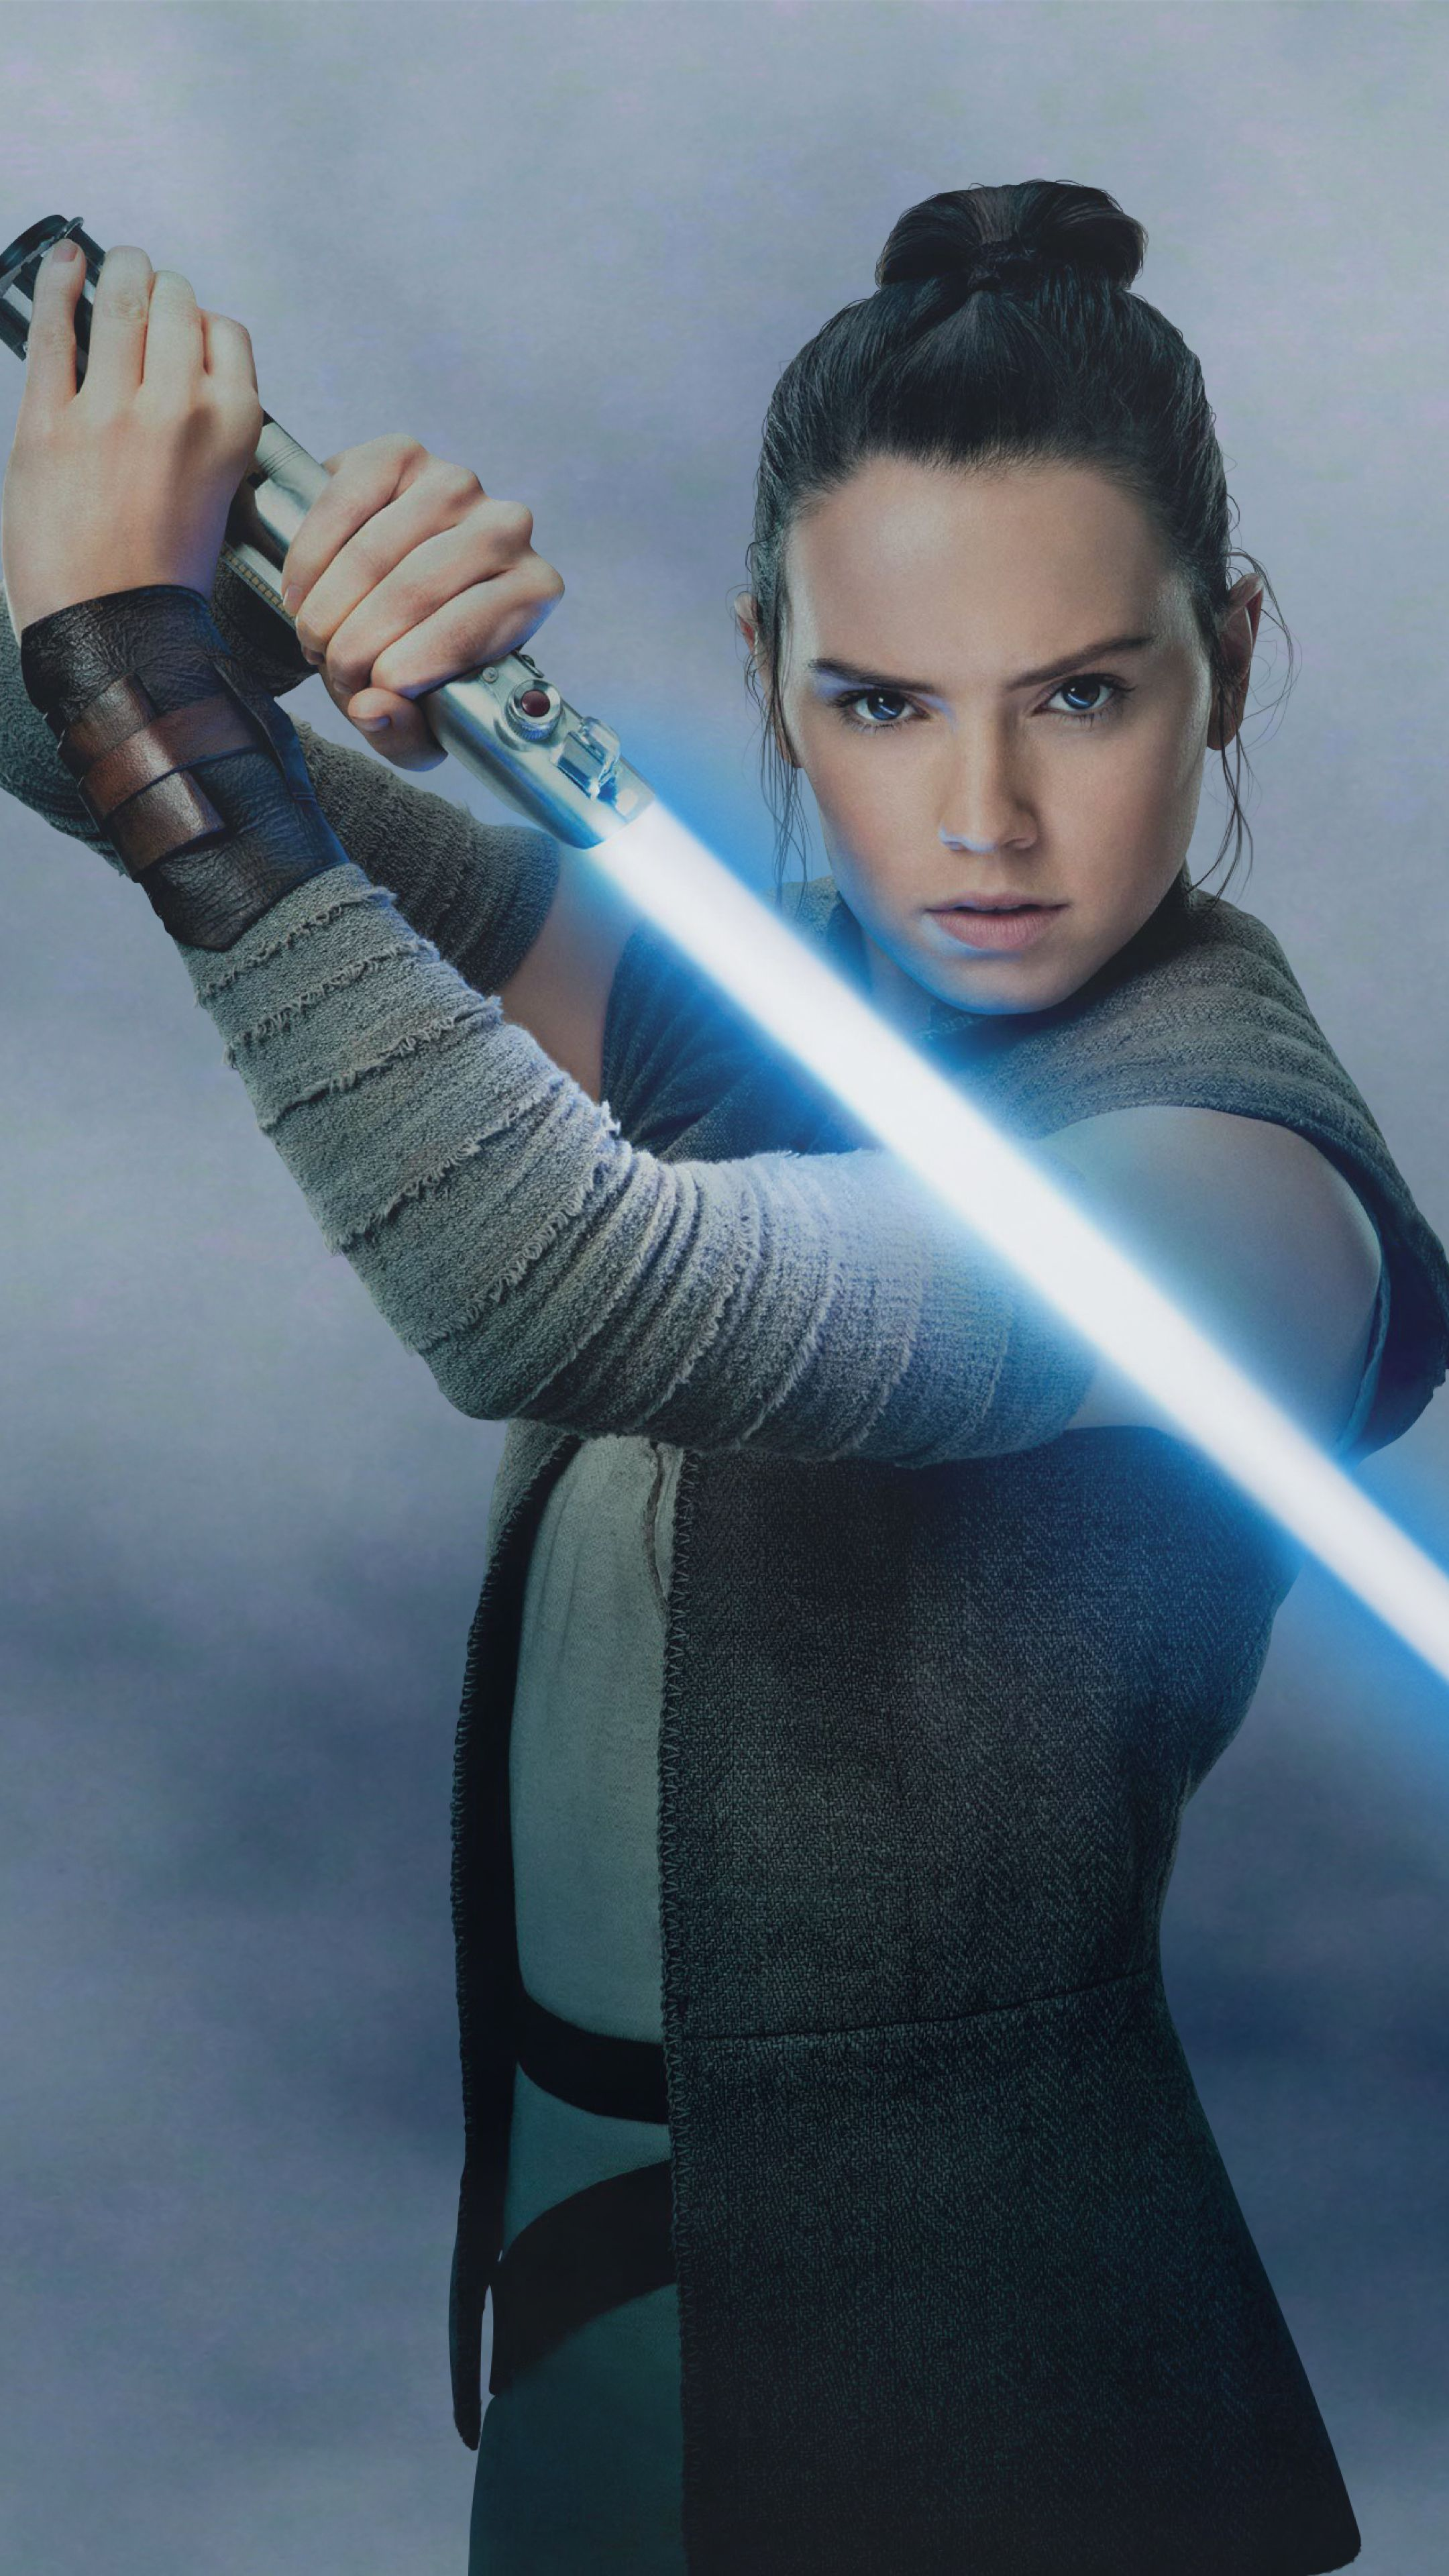 Rey Star Wars The Last Jedi 2017 Wallpaper Hd Movies 4k Wallpapers Images Photos And Background The Las In 2020 Rey Star Wars Star Wars Women Star Wars Wallpaper